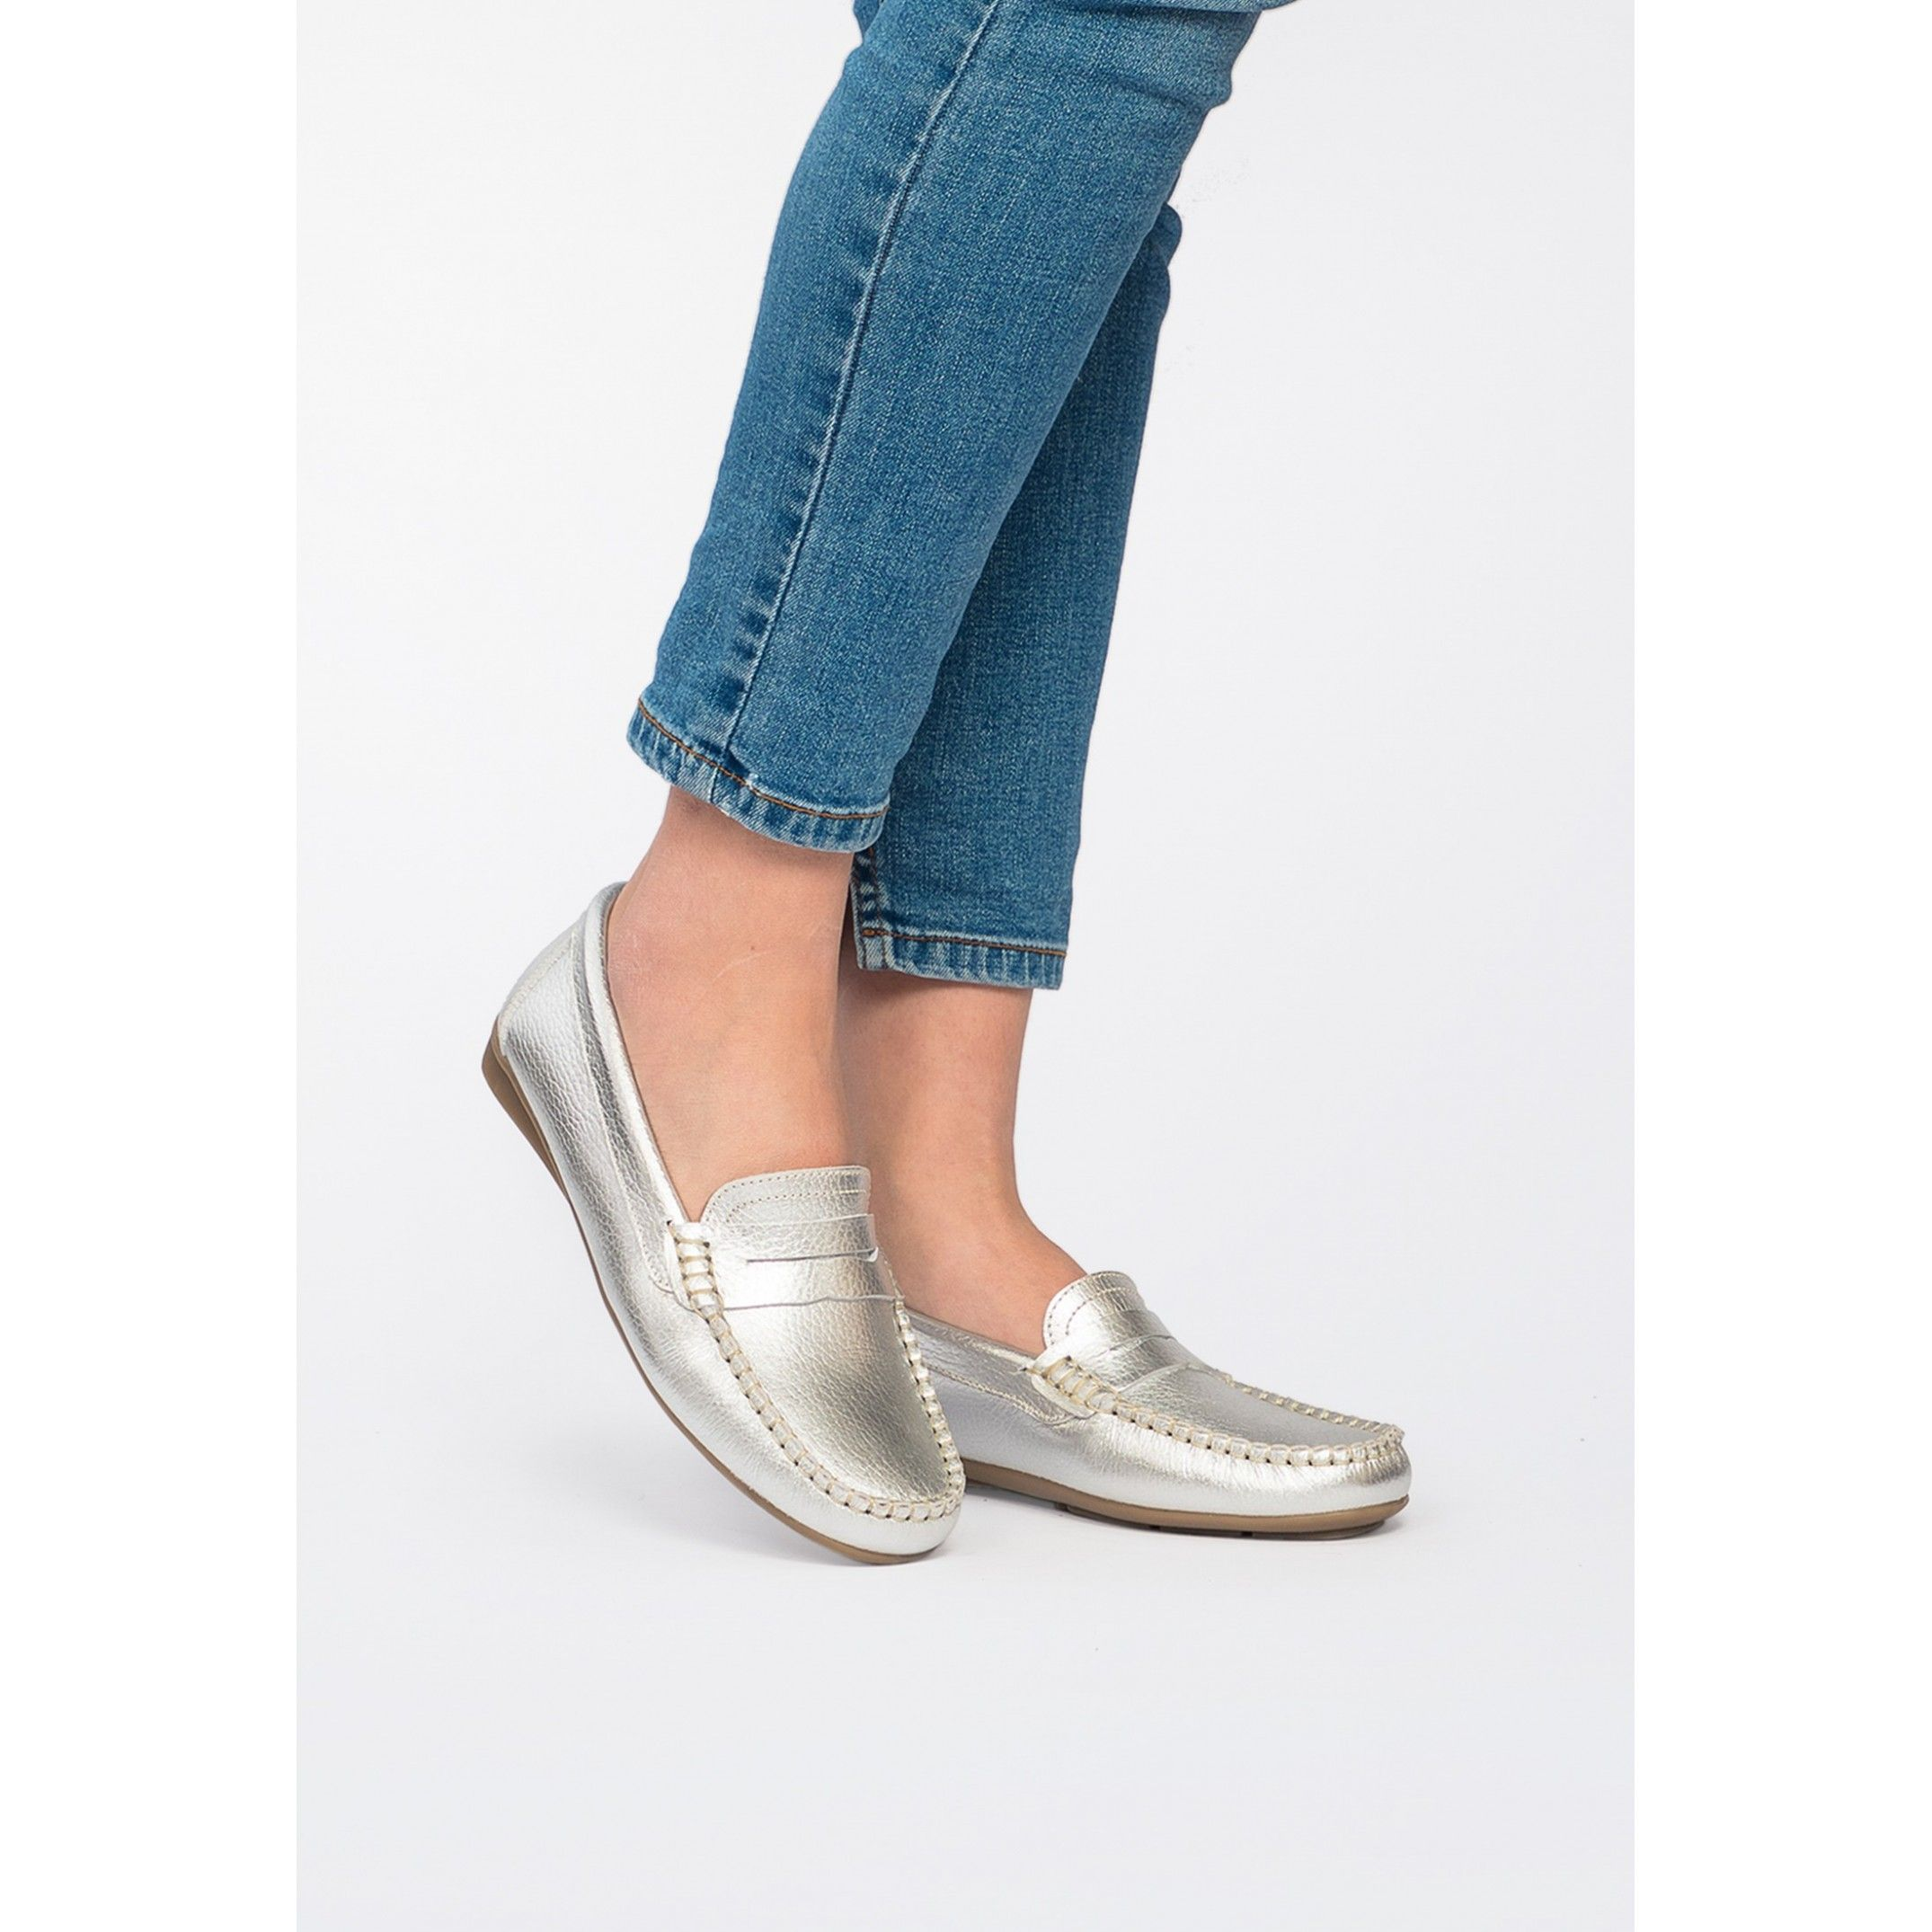 Leather Loafers for Women